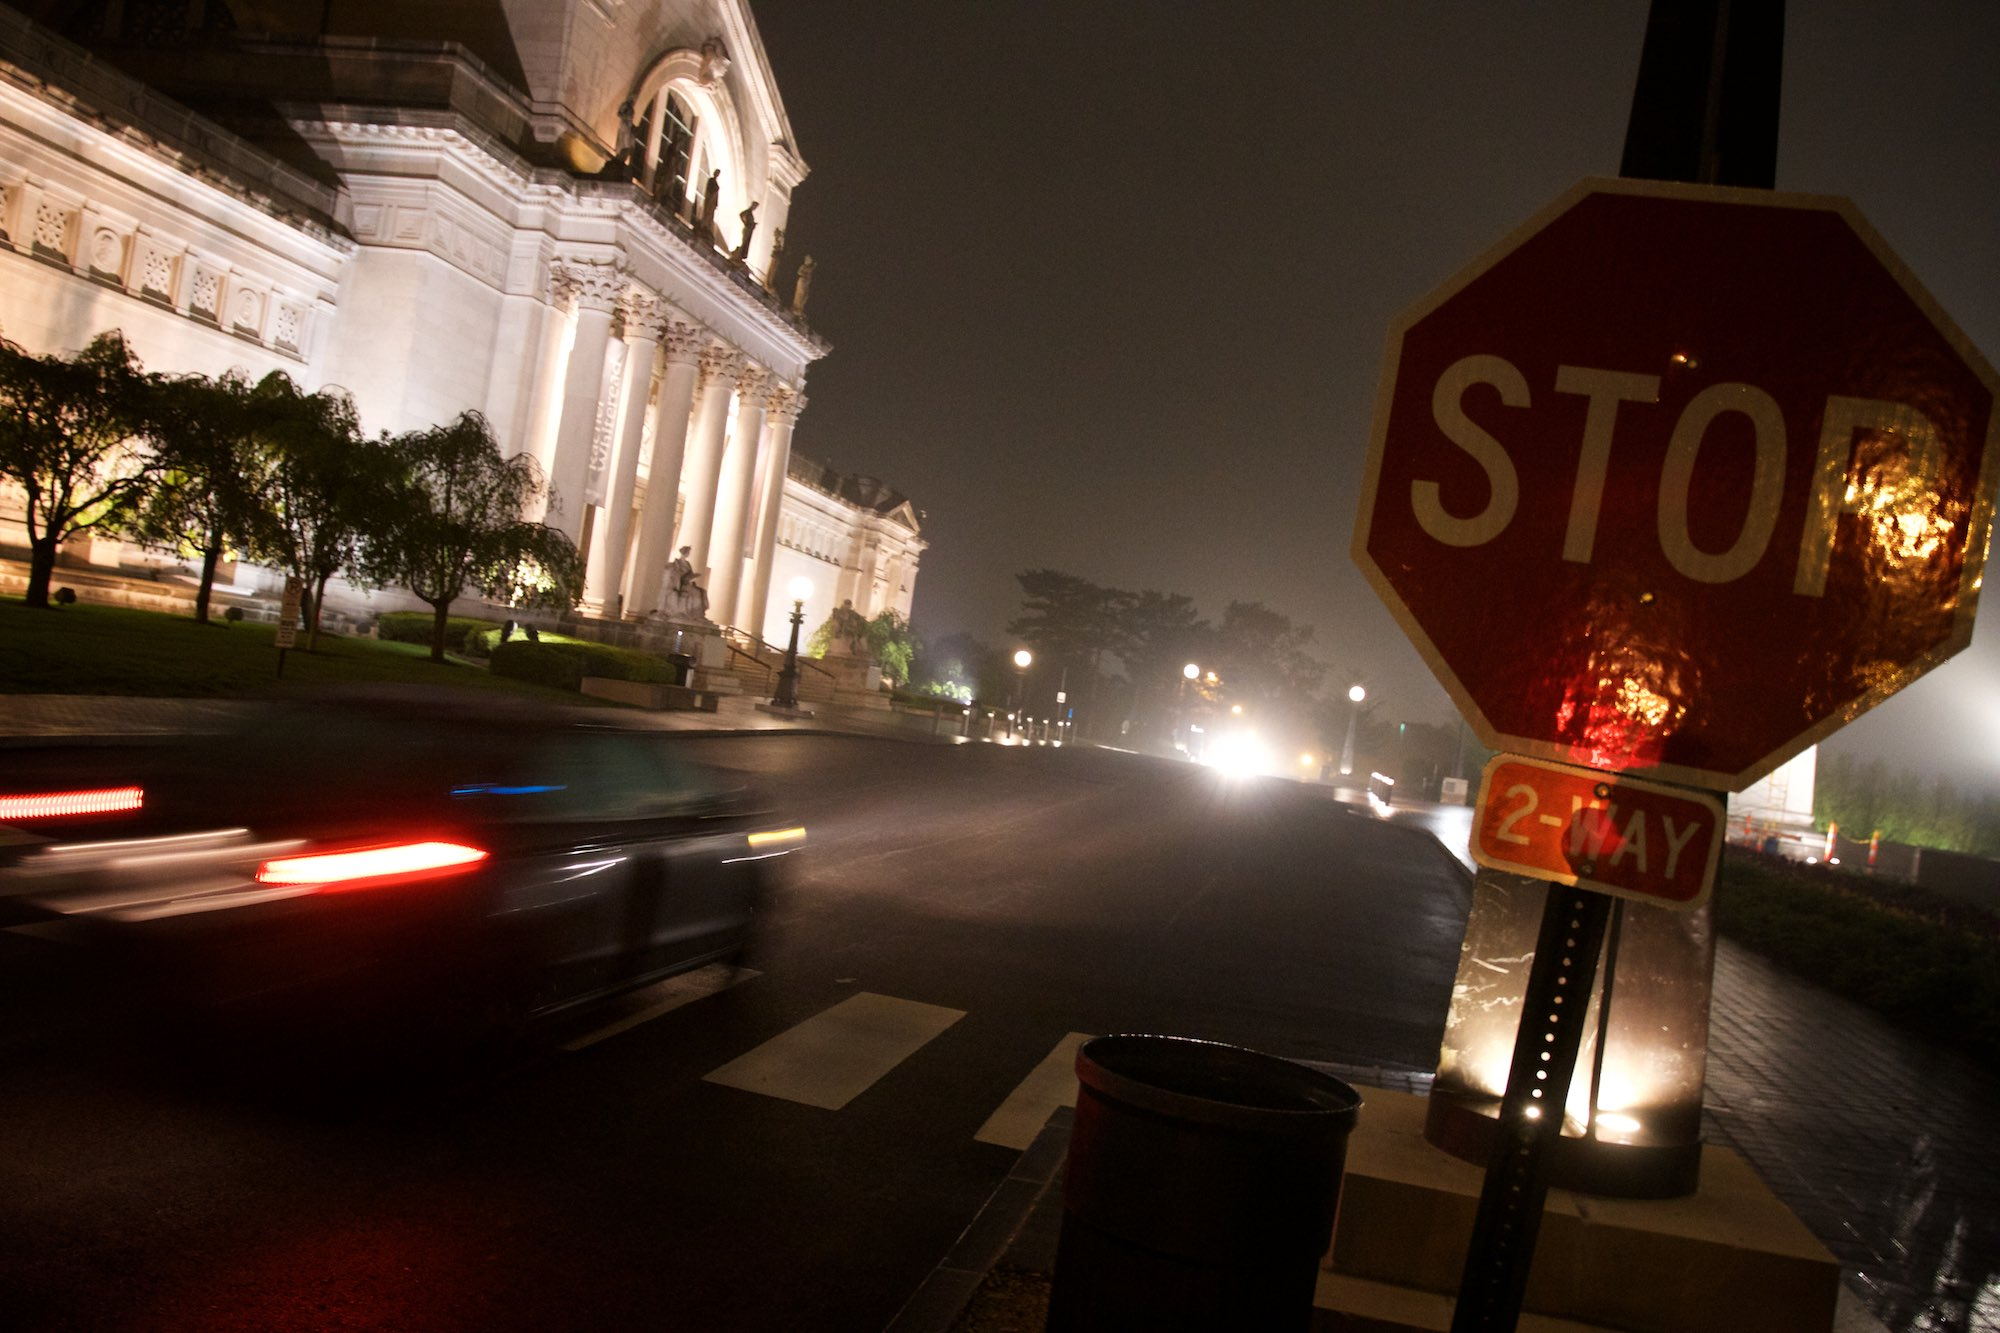 By the Saint Louis Art Museum on a misty night. Click on the image for more photos.